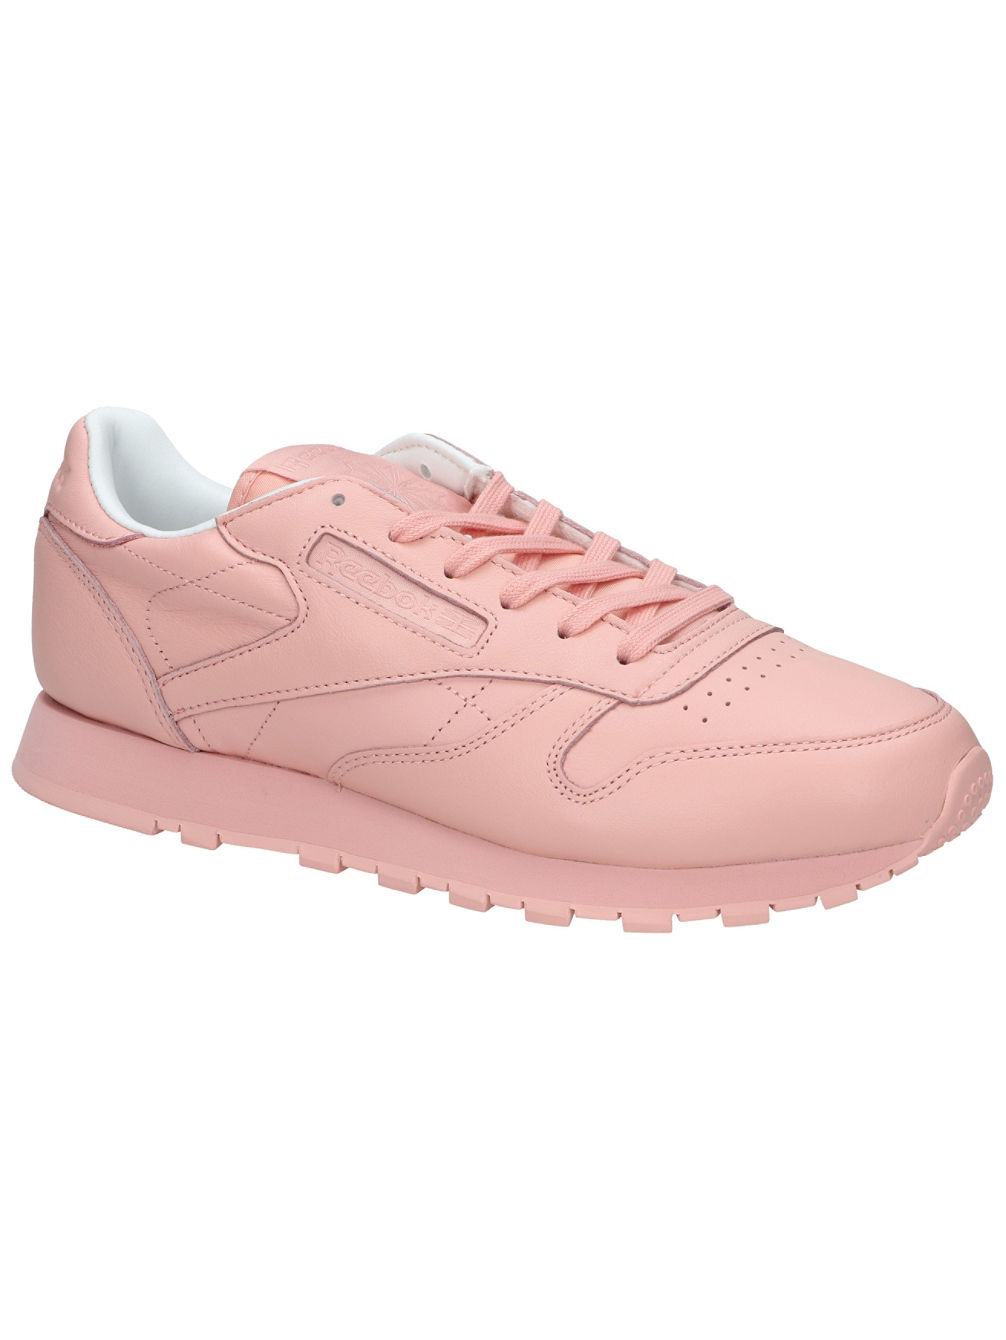 Classic Leather Pastels Sneakers Women